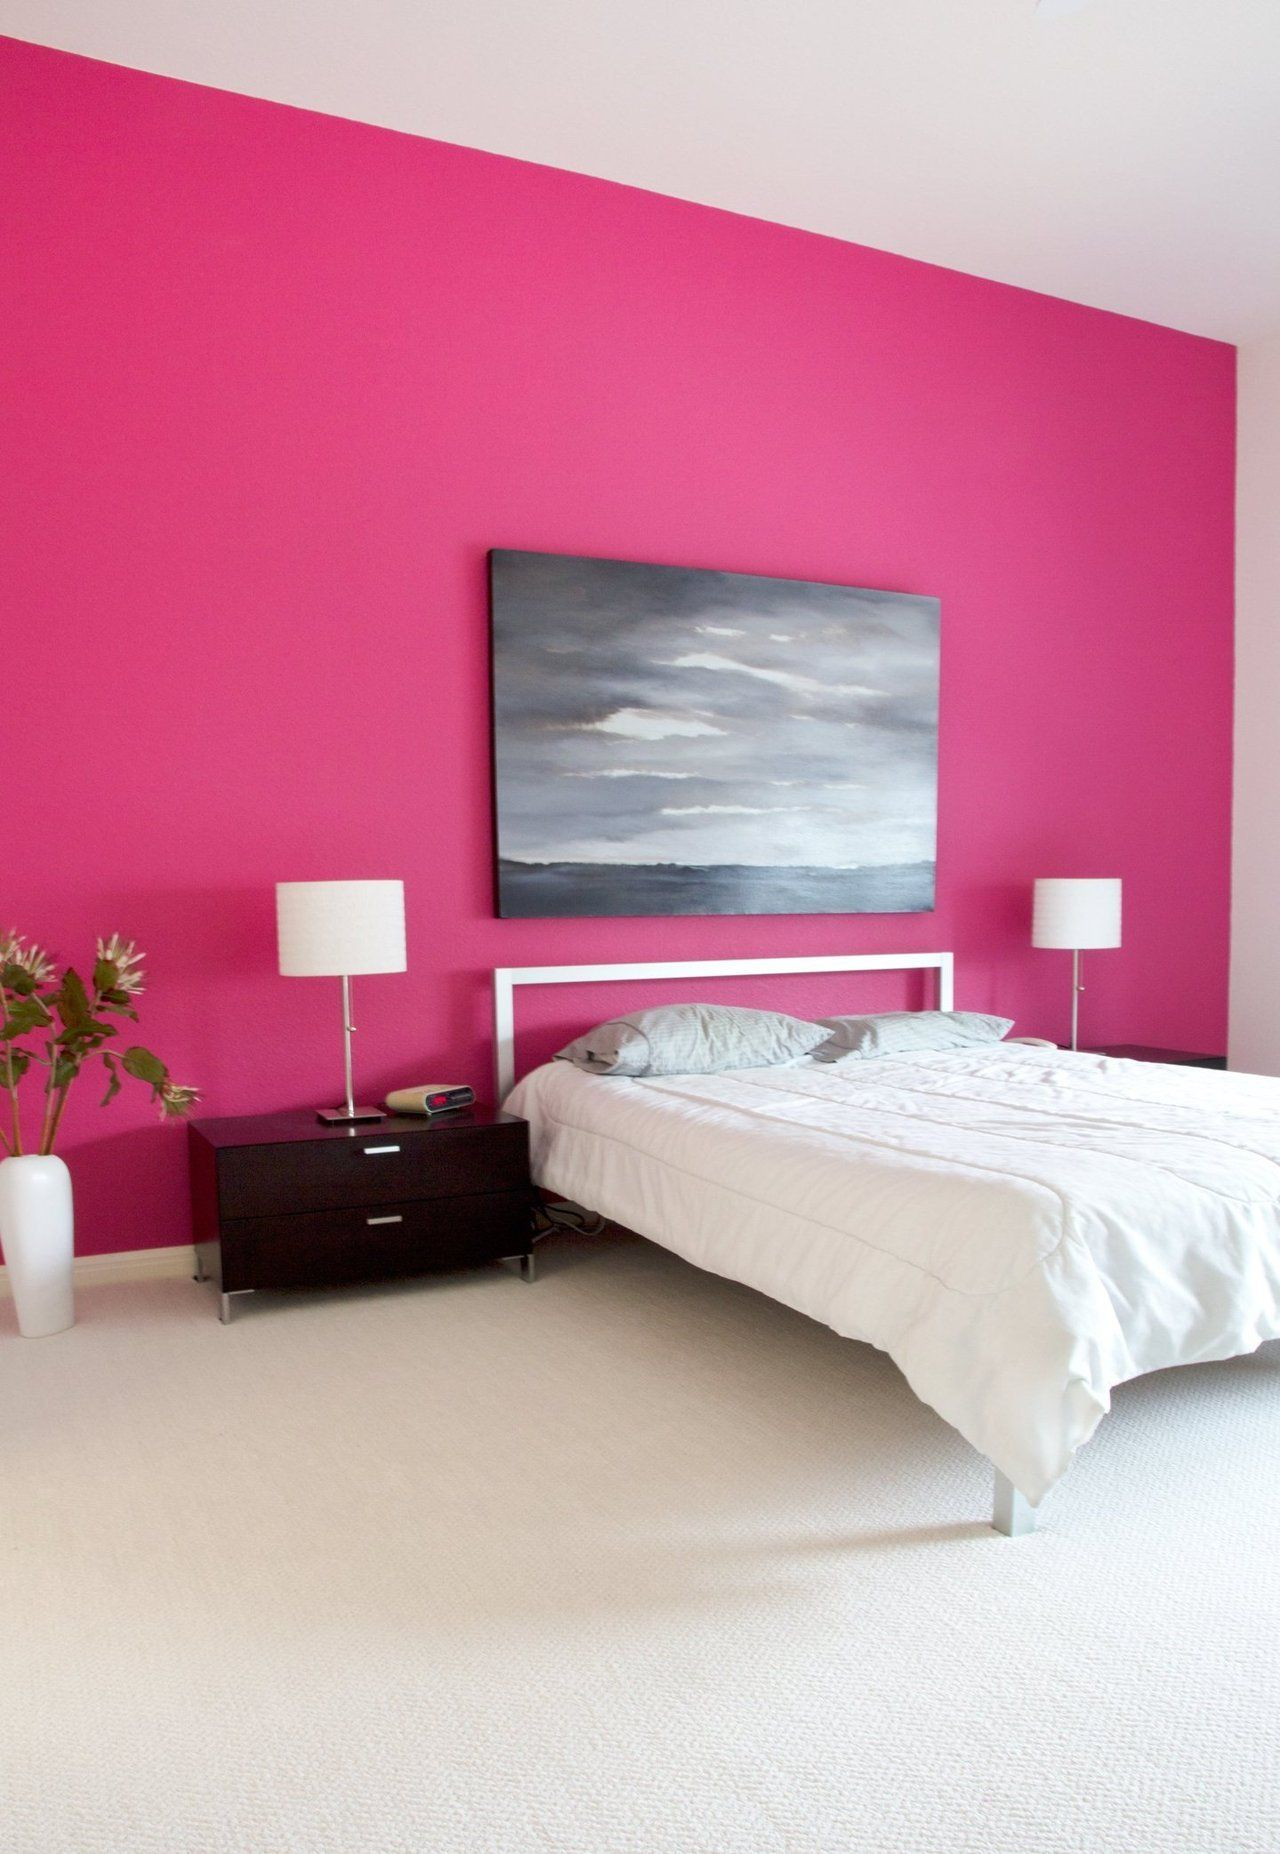 Bernadette S Cool Colorful Contemporary Austin Home Pink Bedroom Walls Living Room Paint Hot Pink Walls Wall paint for bedroom